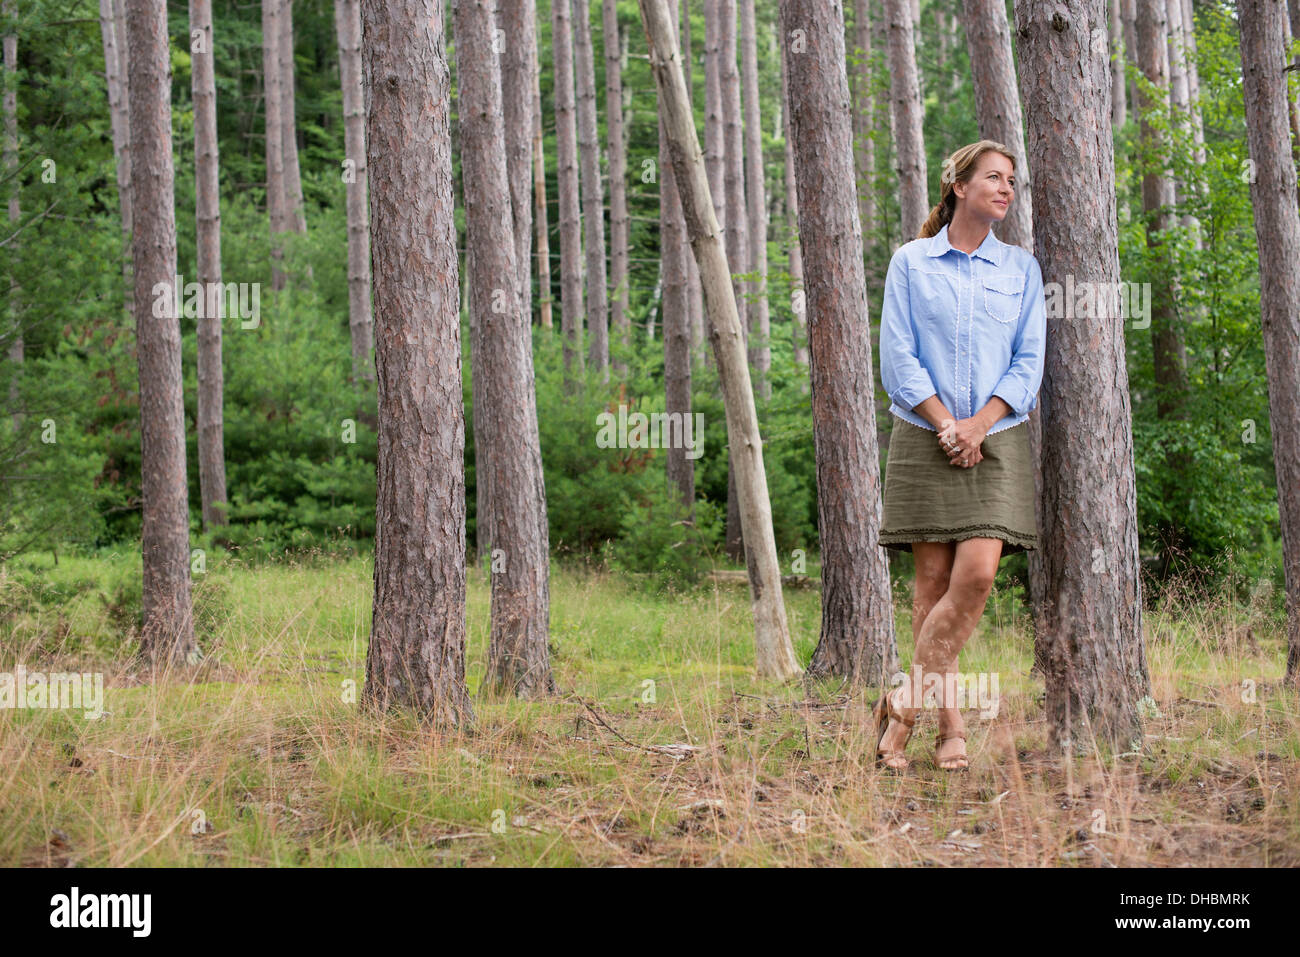 A woman standing among the trees on the shore of a lake in New York state. - Stock Image